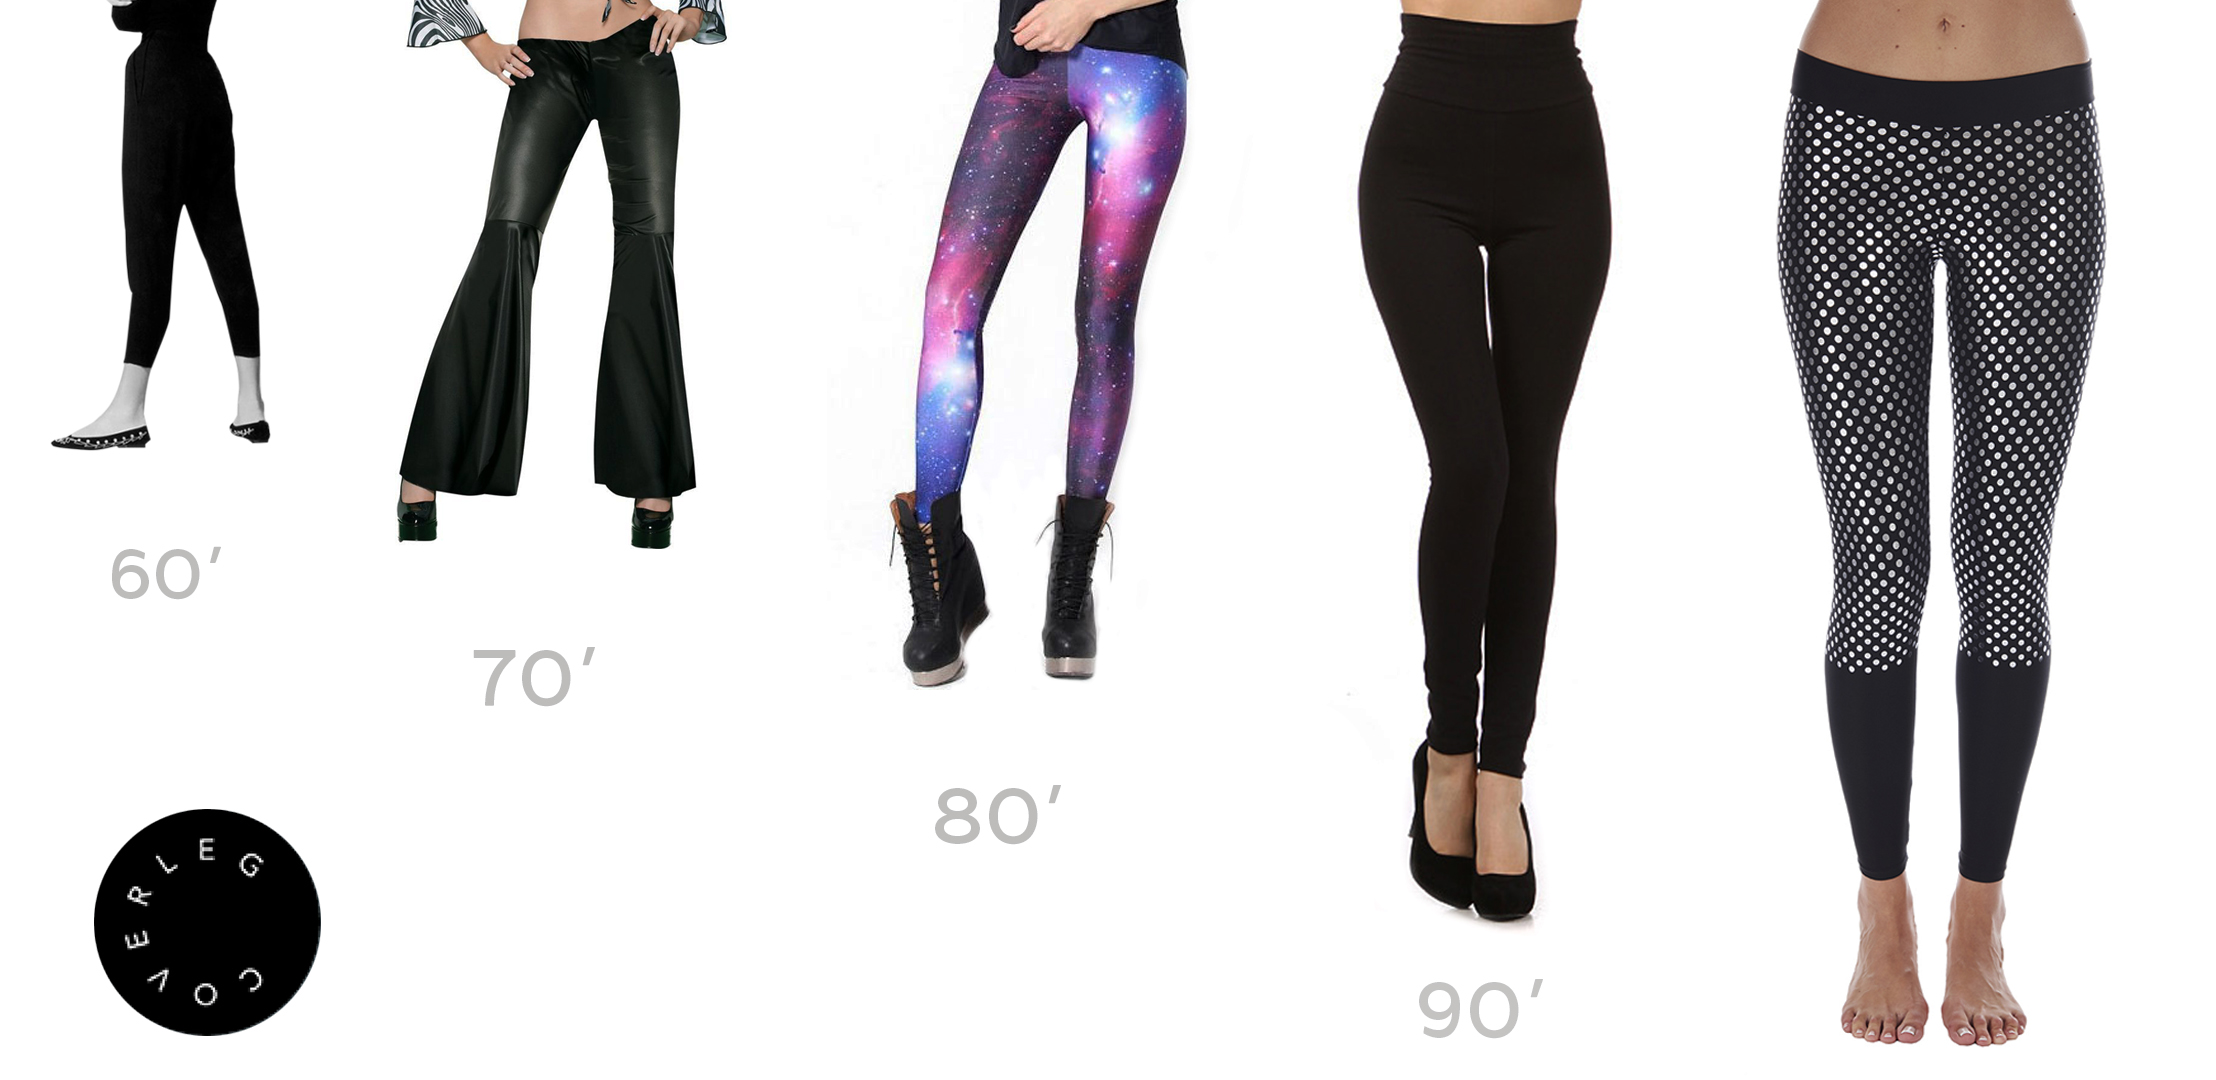 leggings history